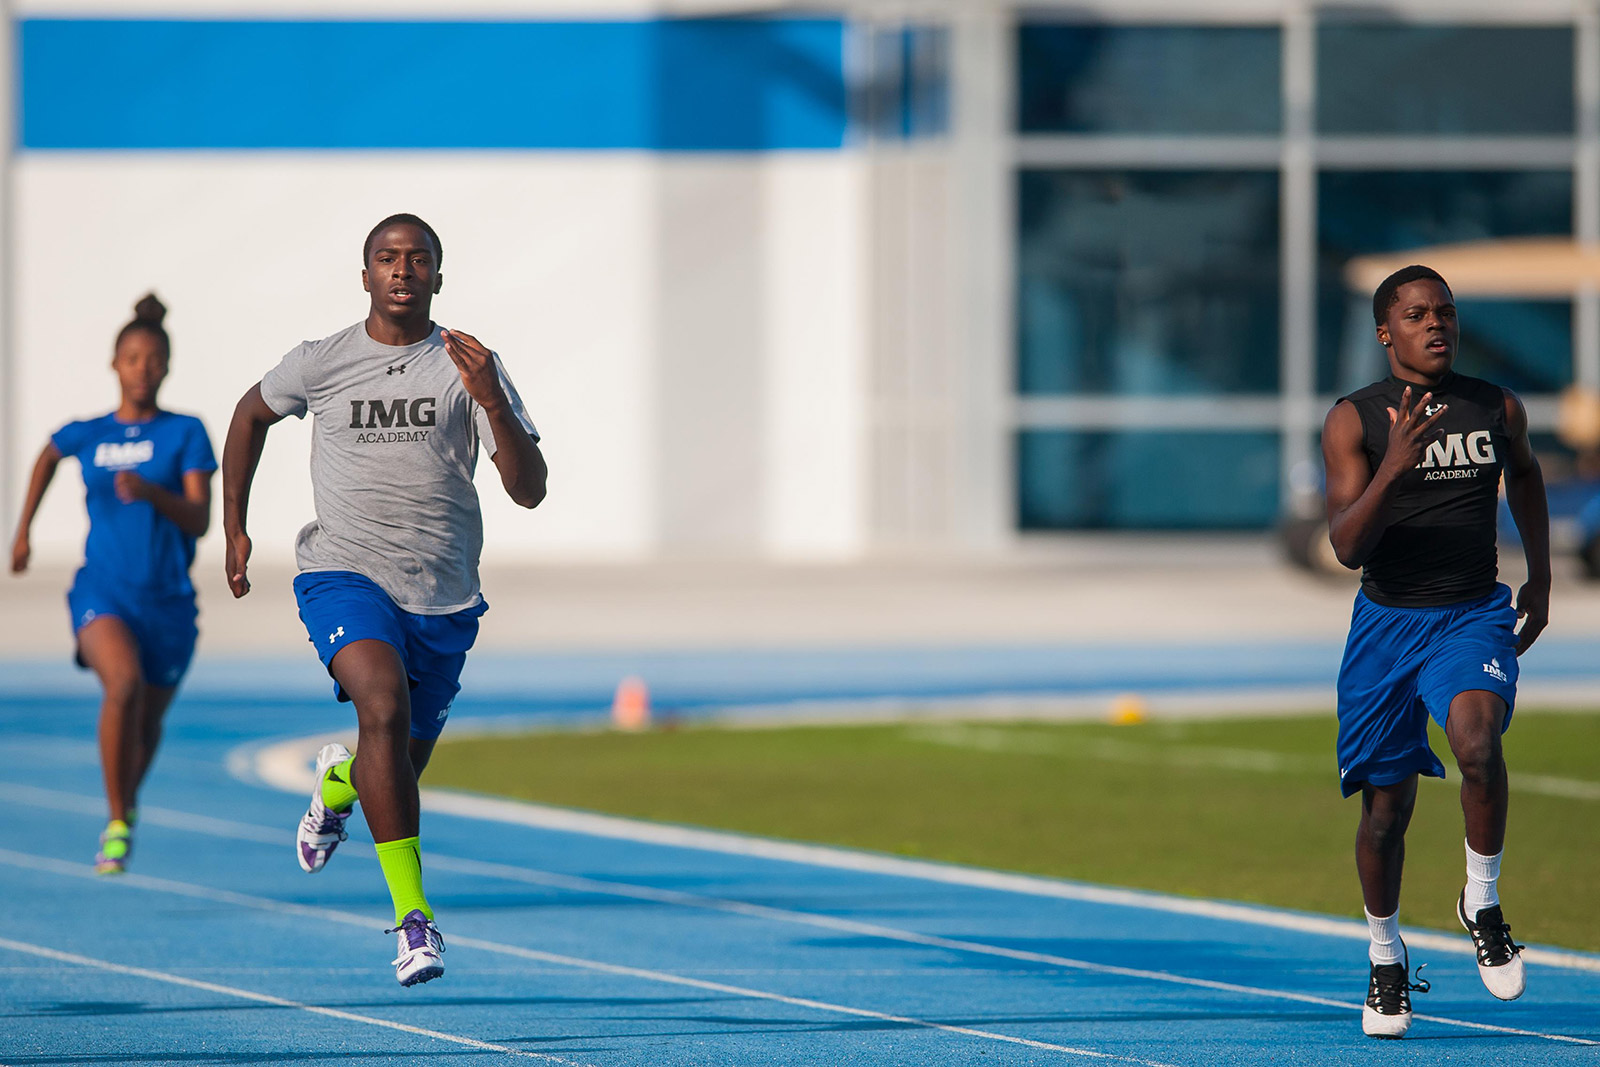 d1d37ceb3e Track and Field Camps - Running Camps | IMG Academy 2019